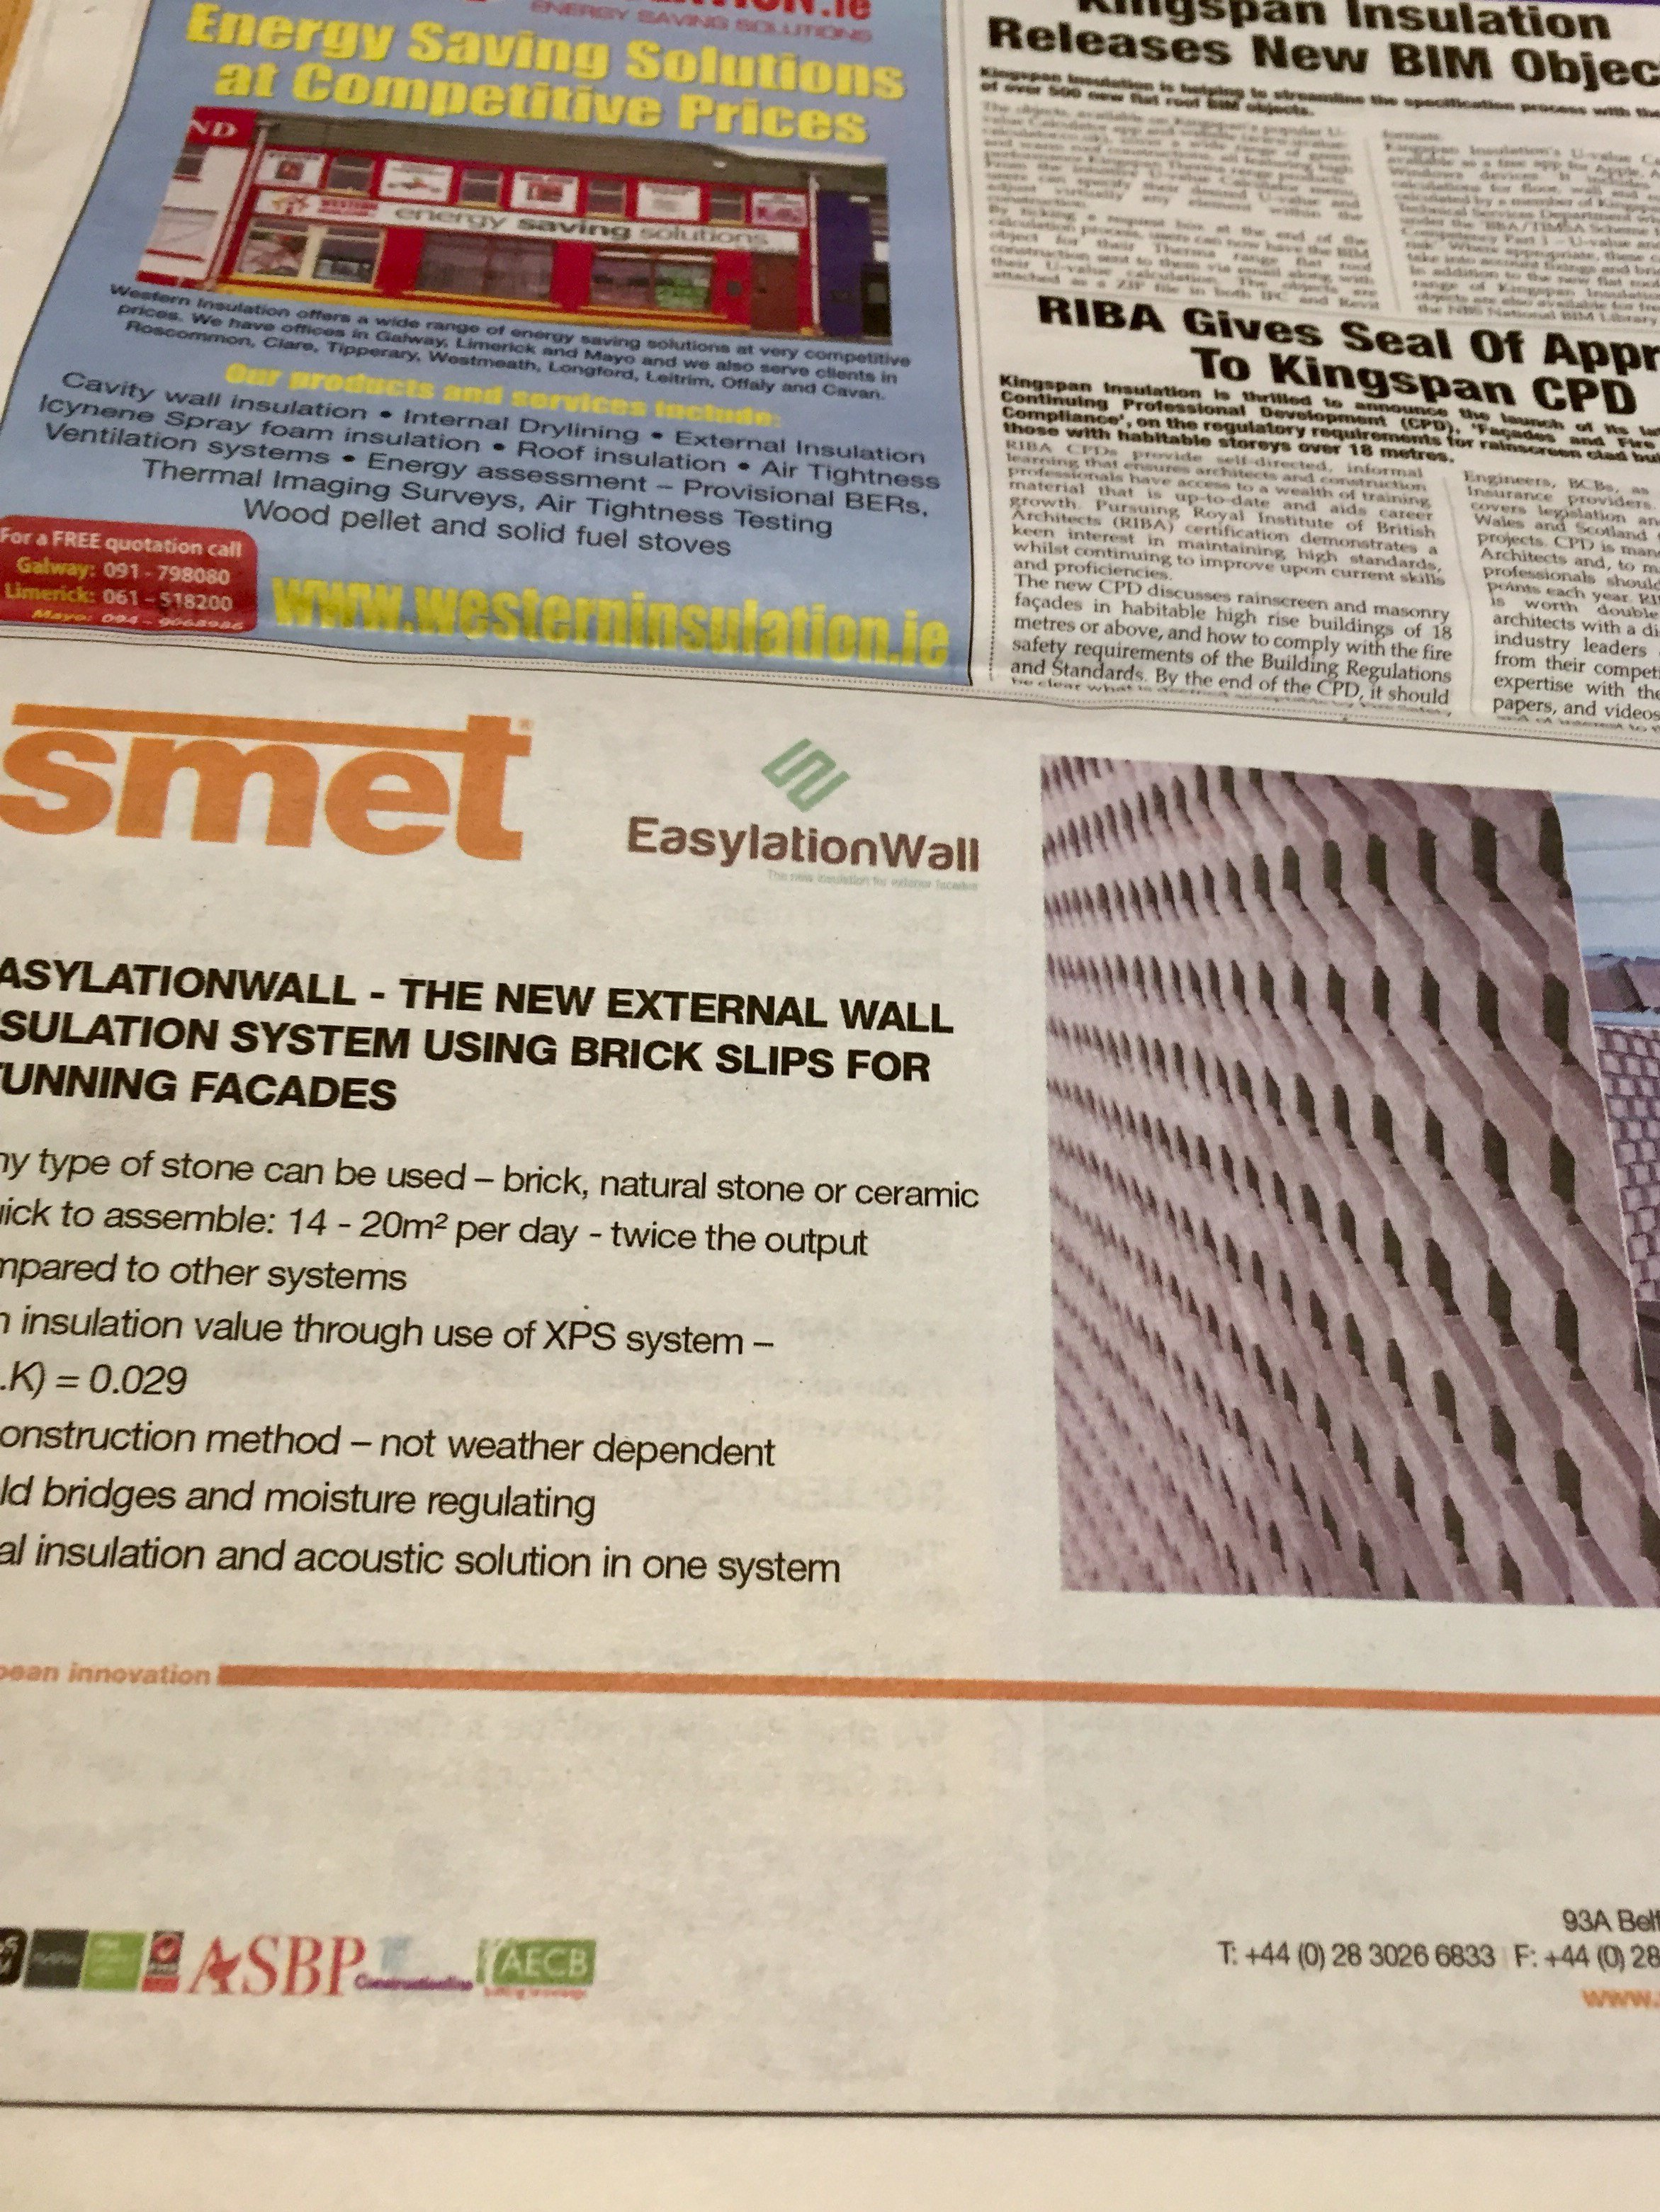 Smet Building Products Ltd feature EasylationWall in latest